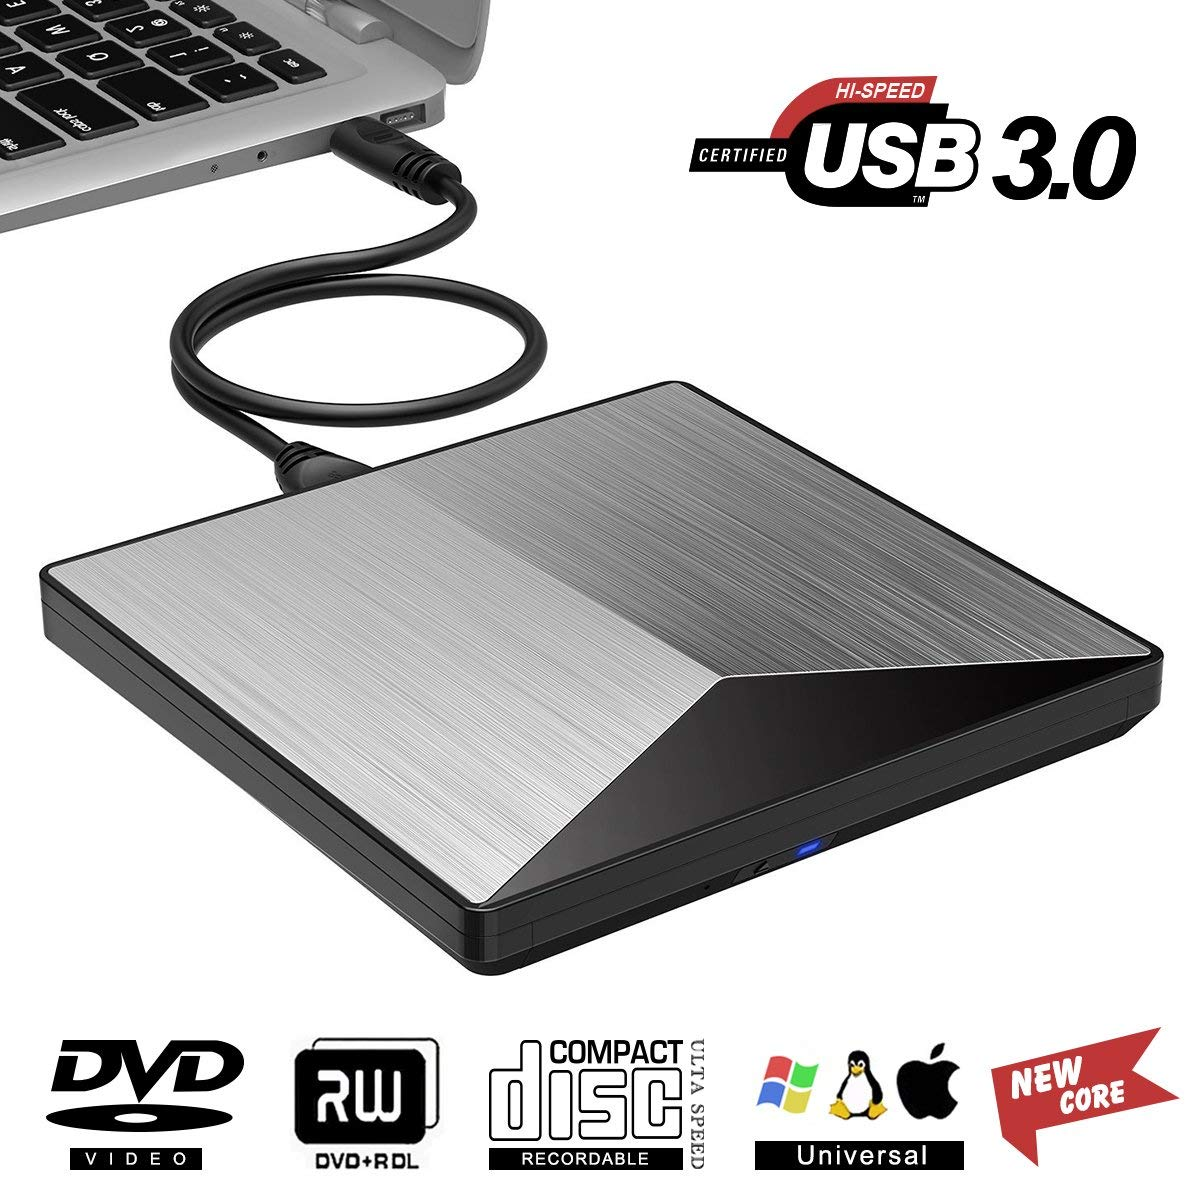 Snorain External CD/DVD Drive,USB 3.0 DVD +/-RW Superdrive CD Burner with High Speed Data Transfer Compatible for MacBook Laptop Desktop PC Windows10 /8/7 /XP Linux Mac OS (Silver) by Snorain (Image #1)